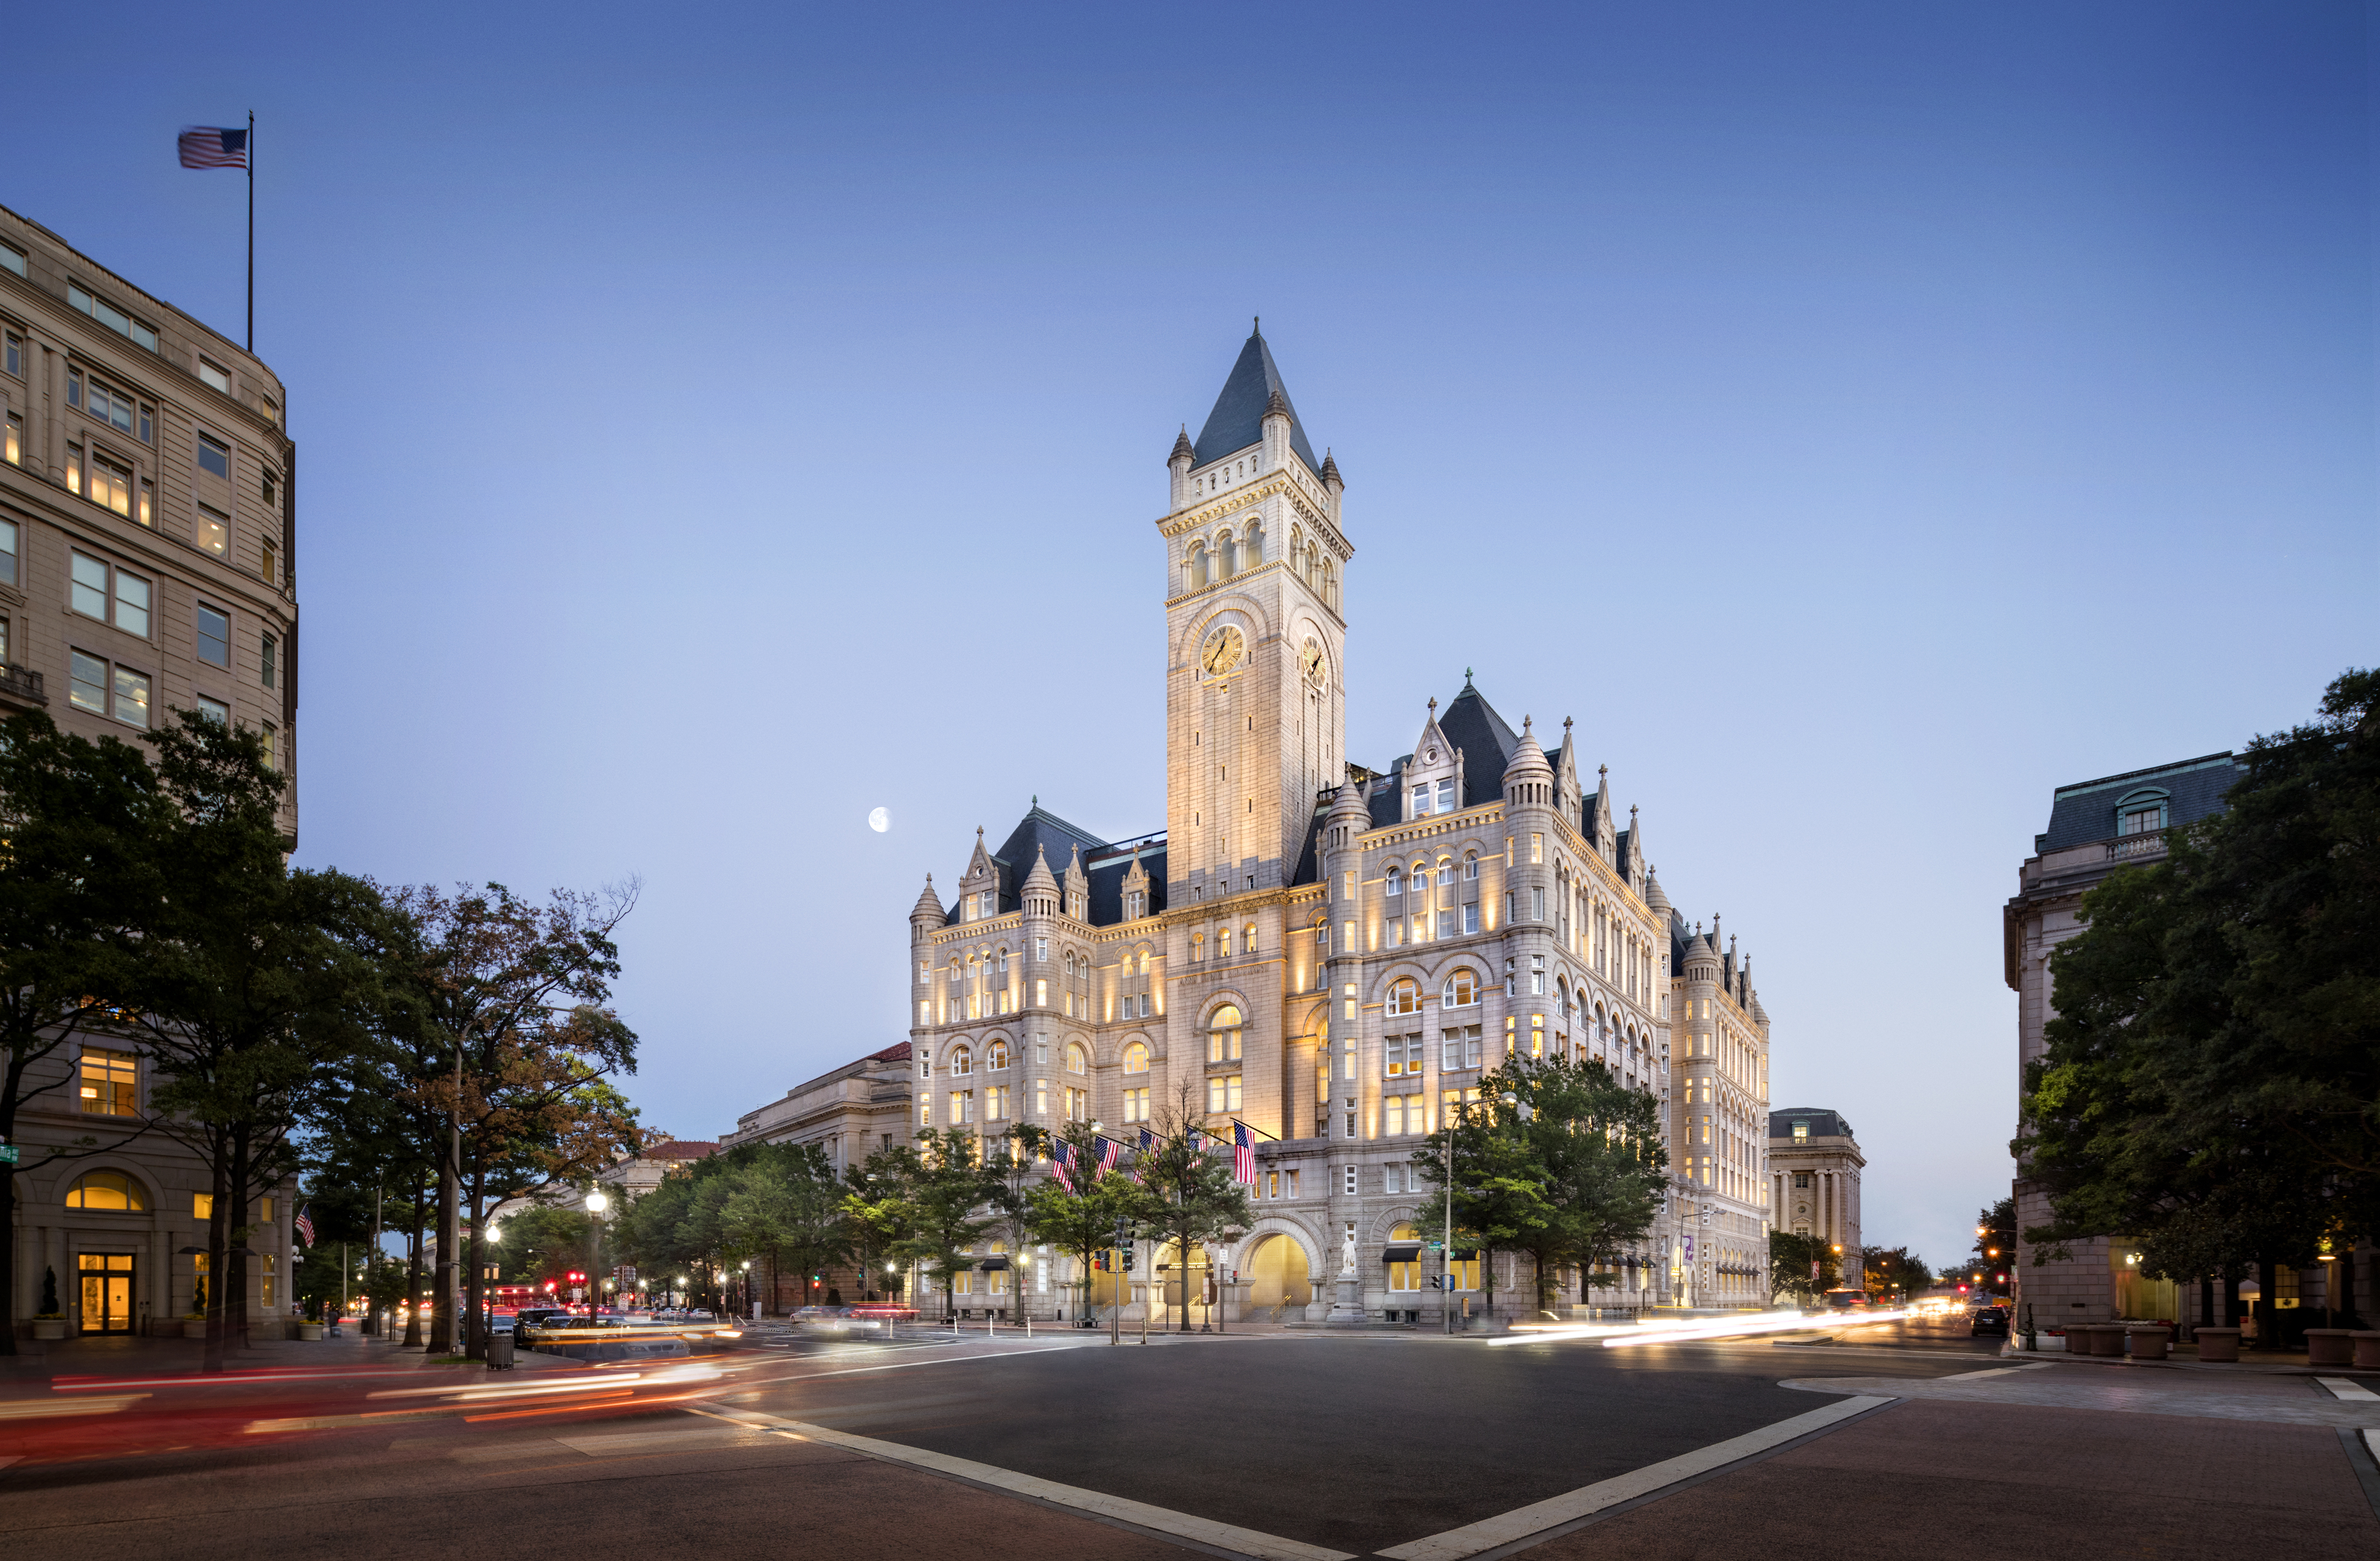 Trump International Hotel Tower Vancouver And Washington D C Included In The World S Most Luxurious Hotels By Forbes Travel